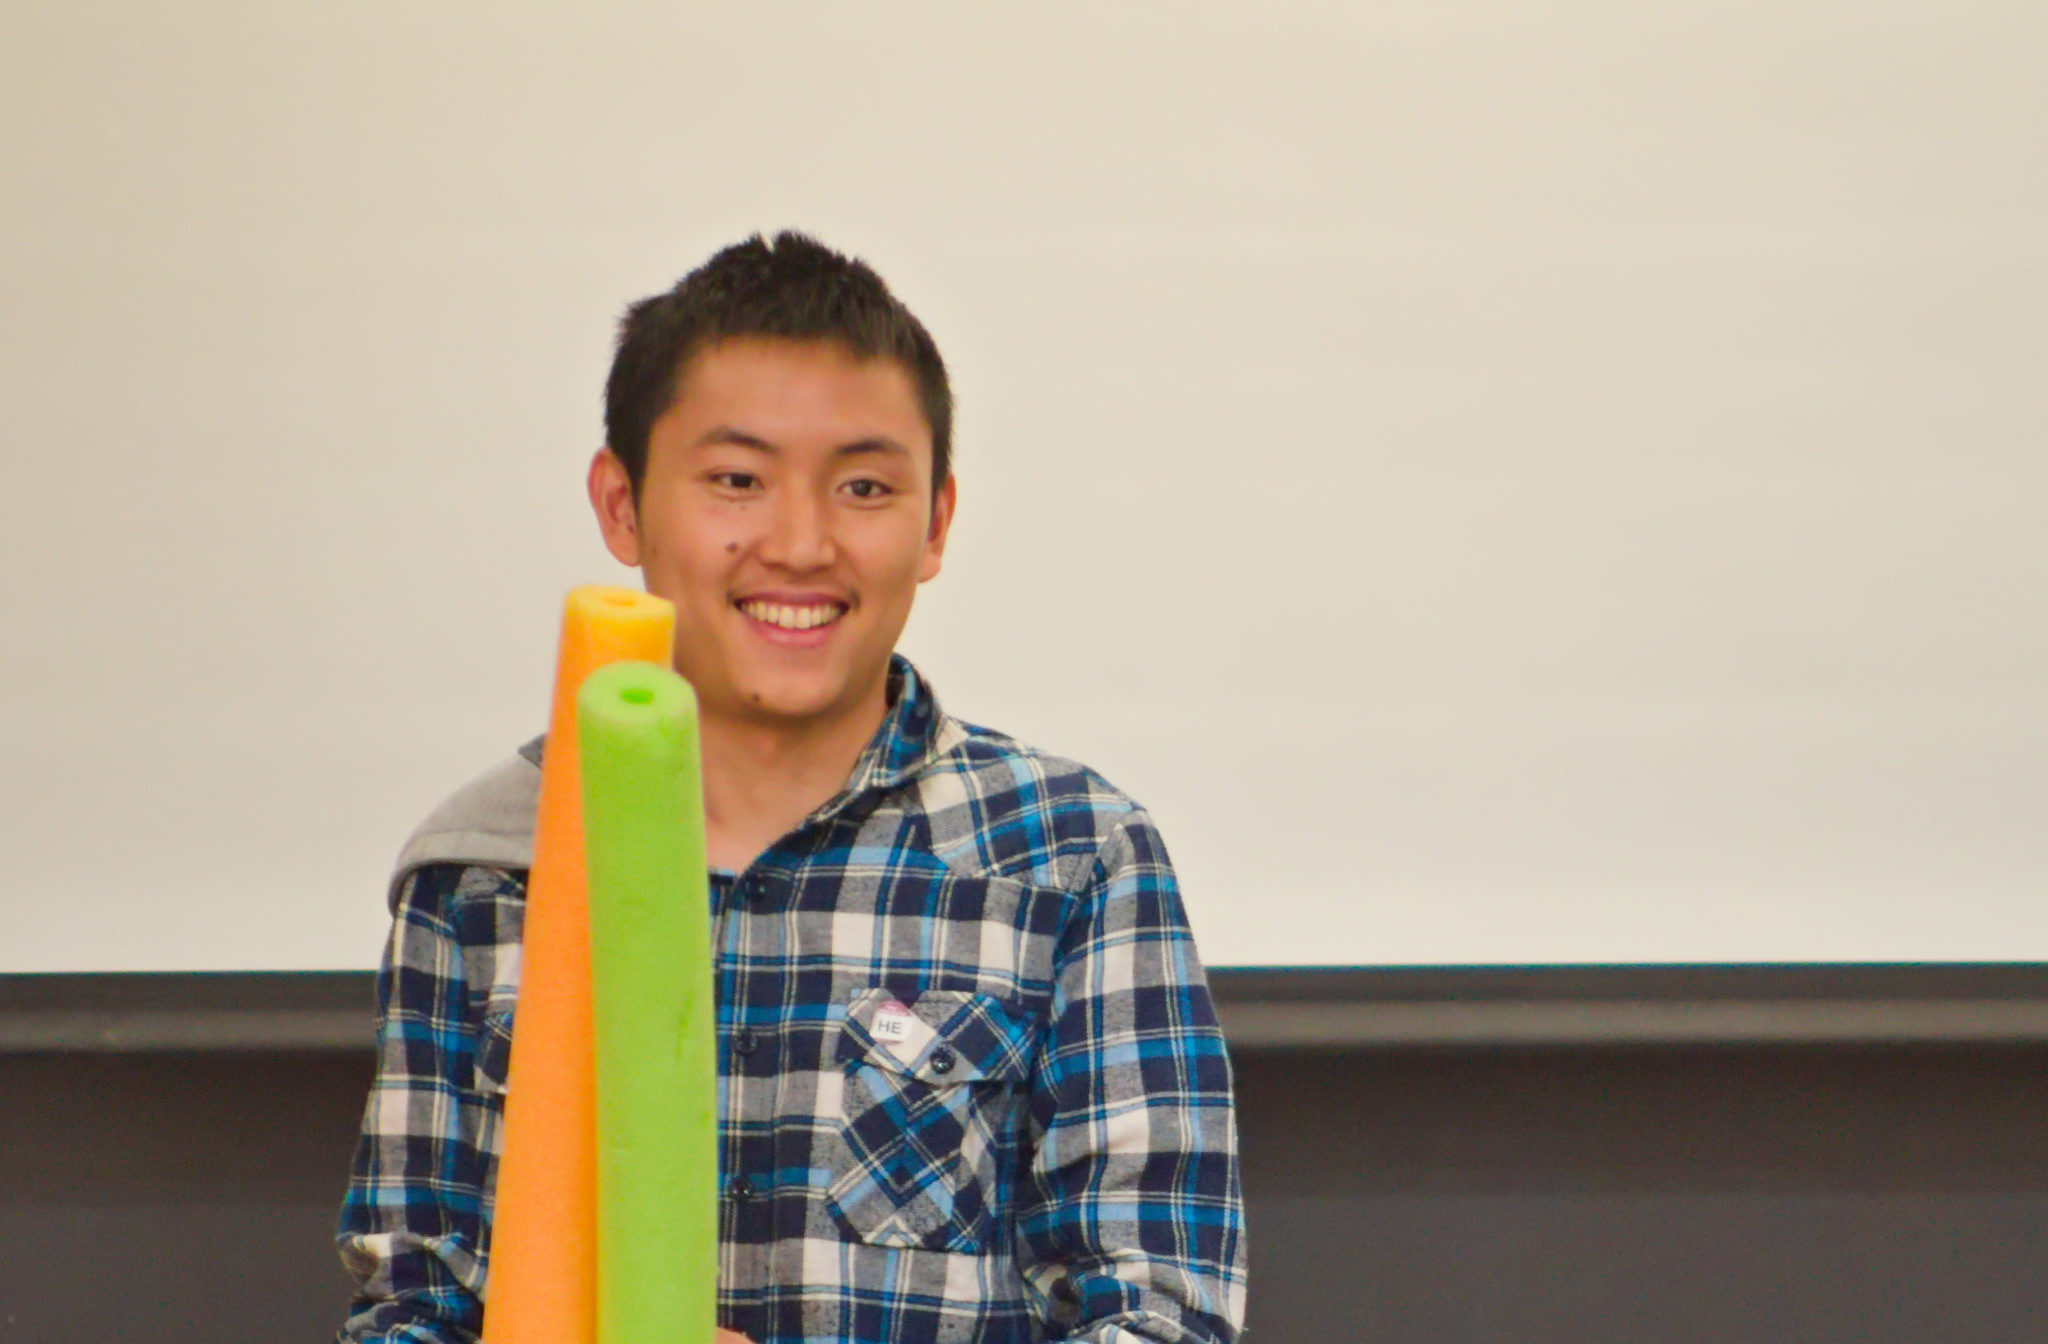 brian c. '19, holding pool noodles, and smiling. did you know he is always smiling